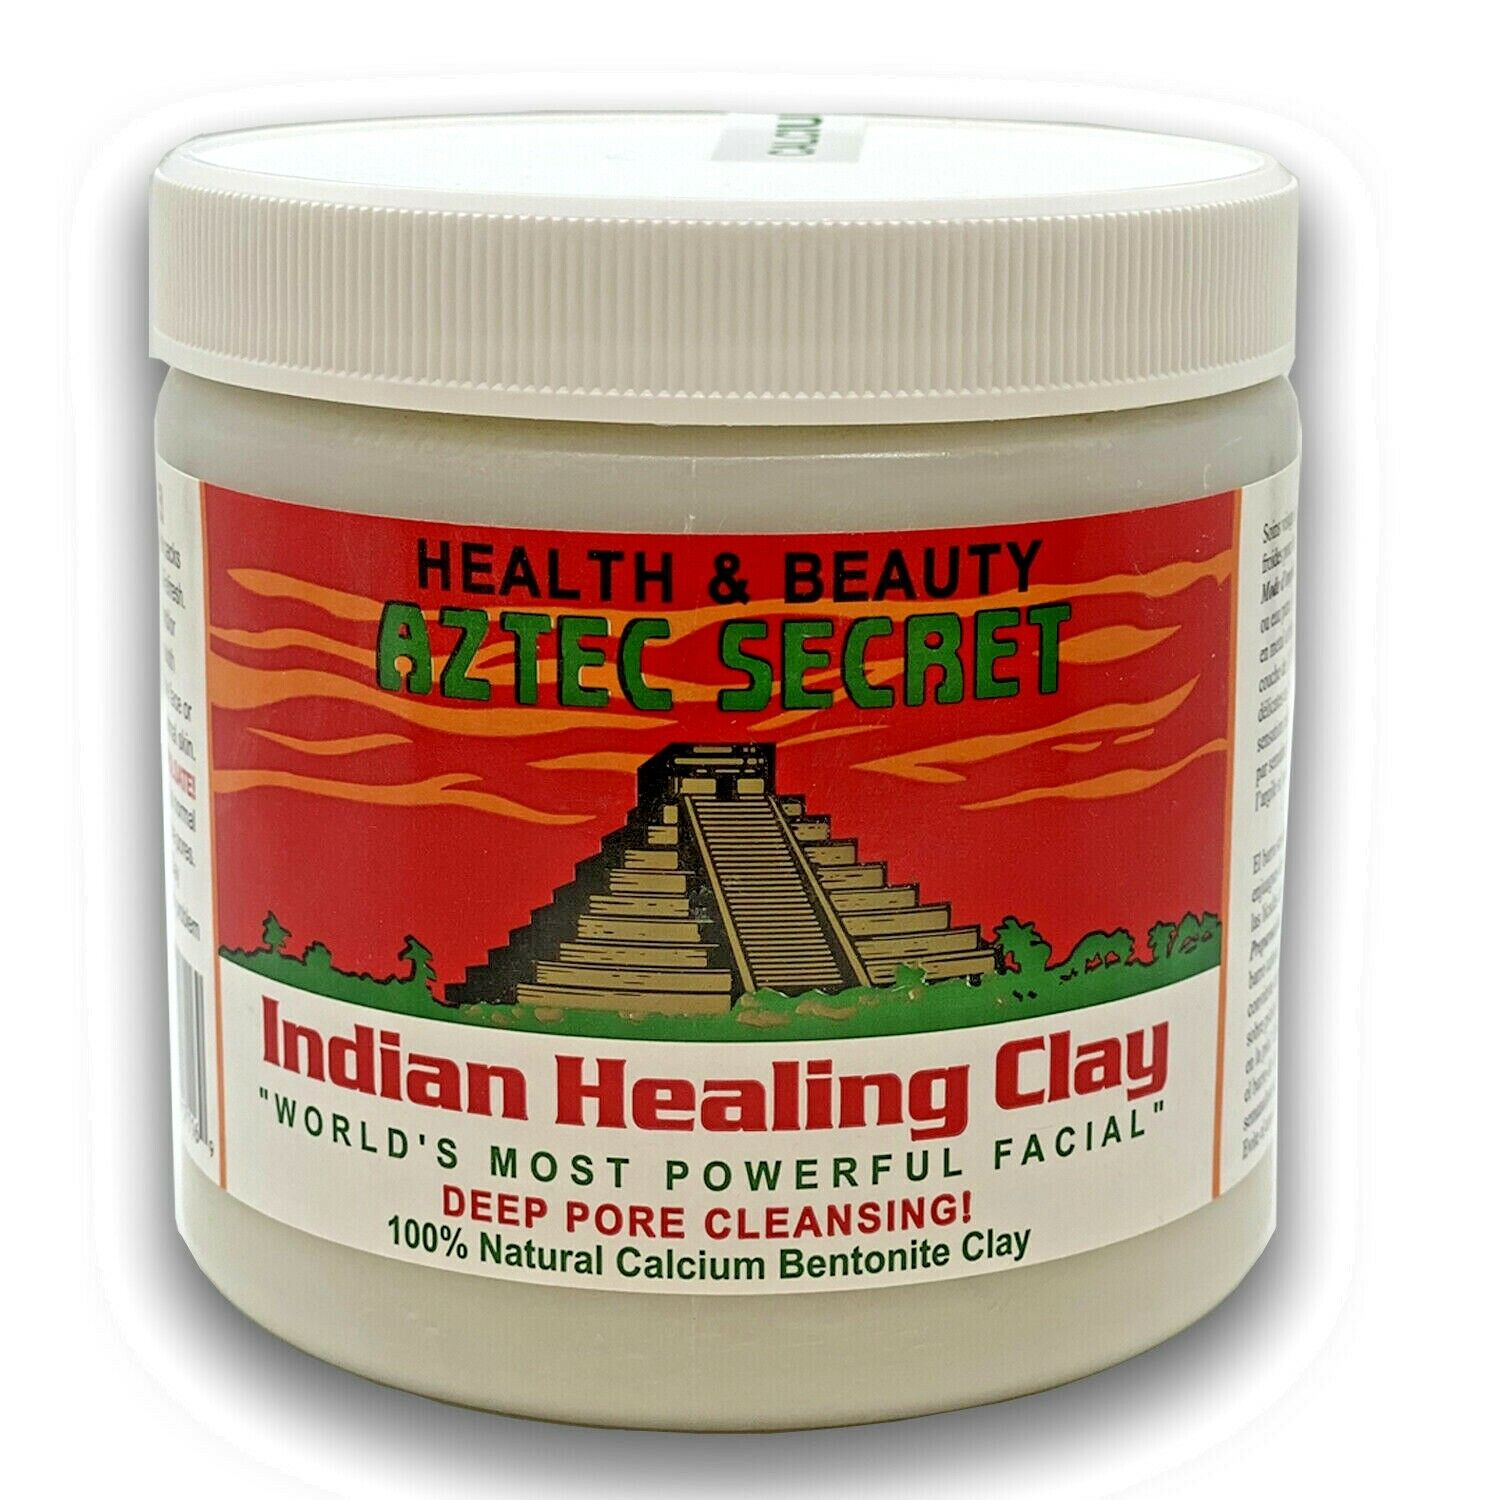 Aztec Secret Indian Healing Clay Deep Pore Cleansing, 1 Poun